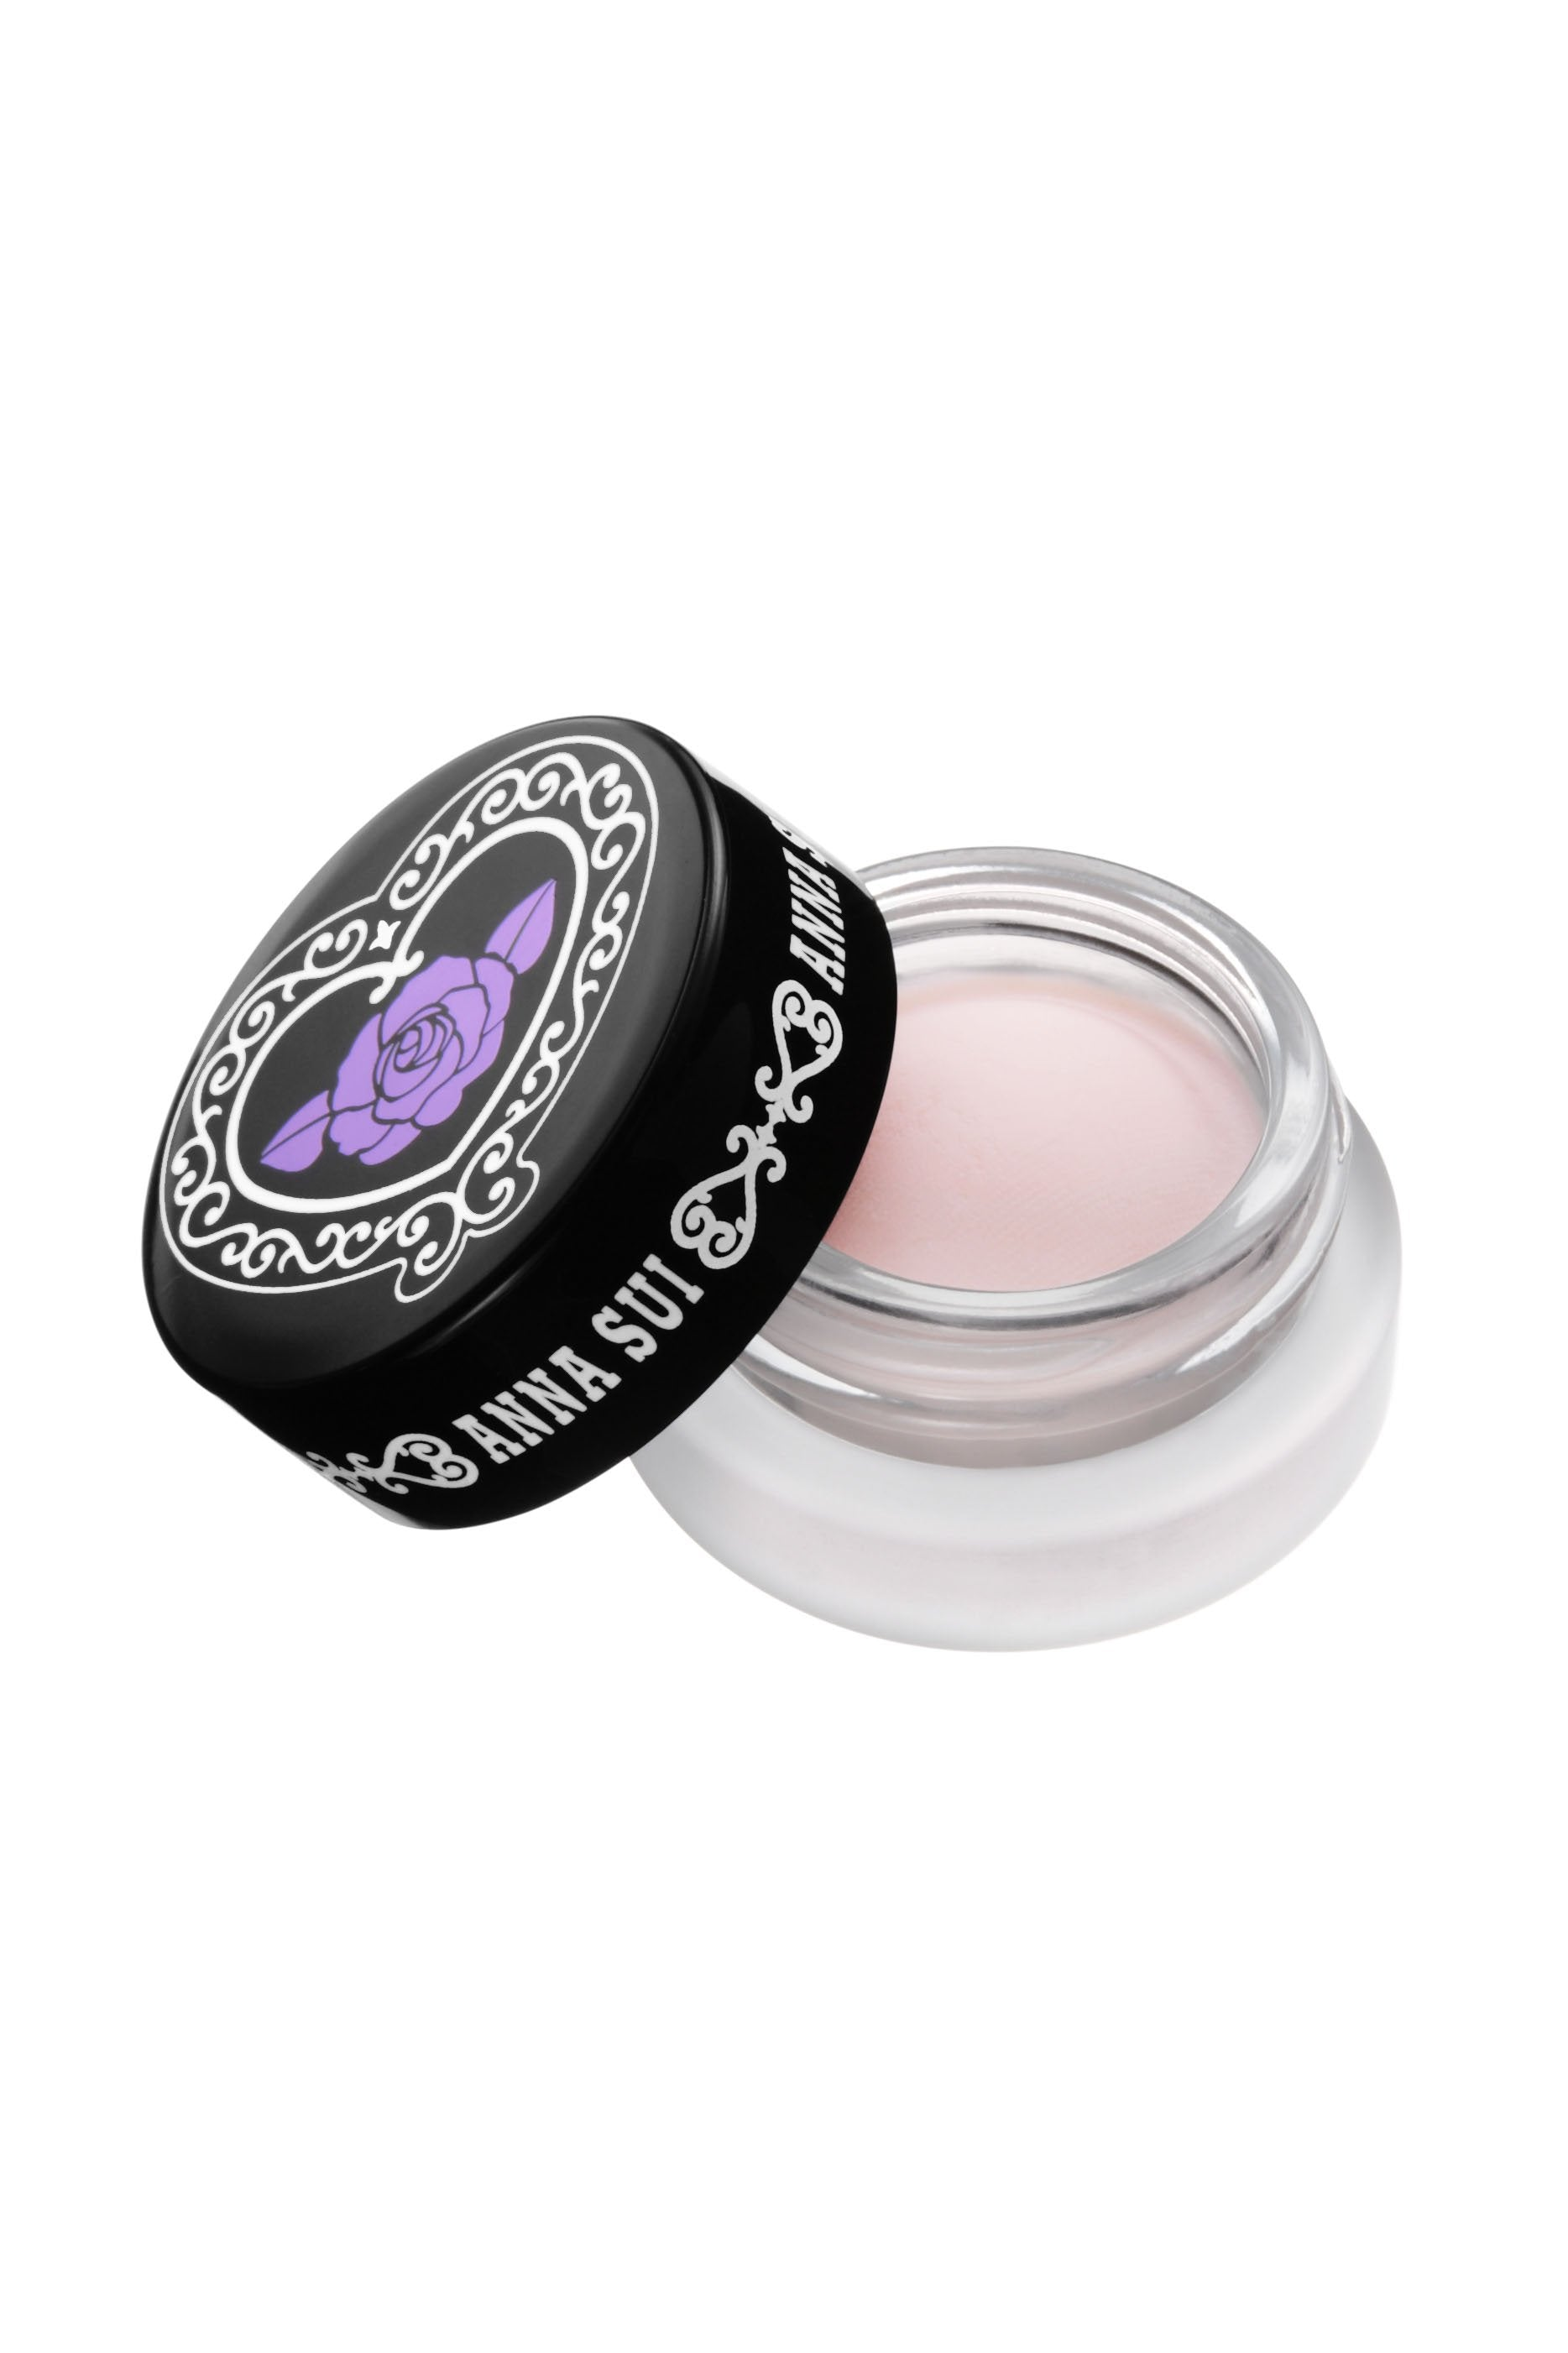 Pore Smoothing Primer - Anna Sui